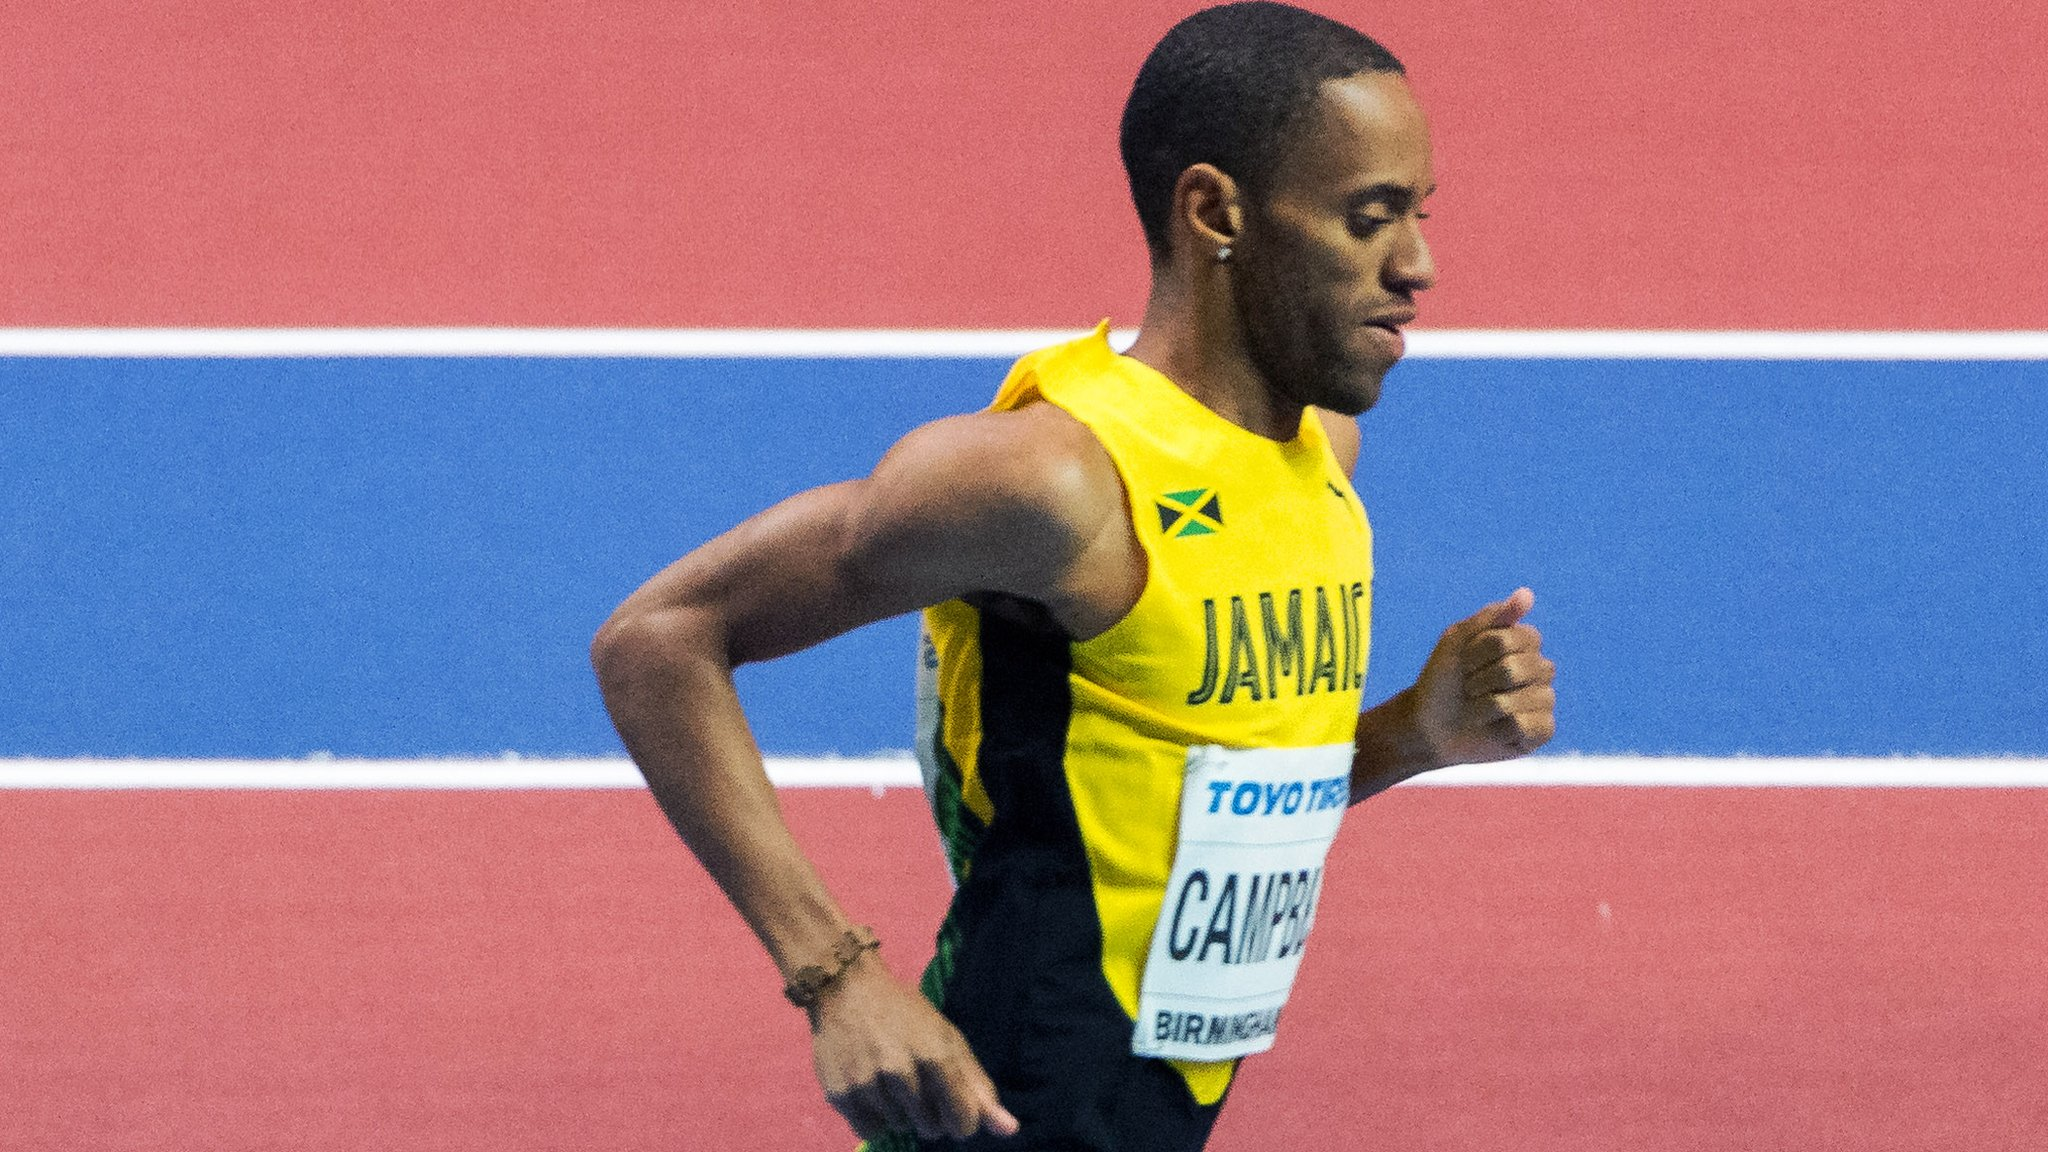 Kemoy Campbell: Jamaican athlete who collapsed told he had died on the track